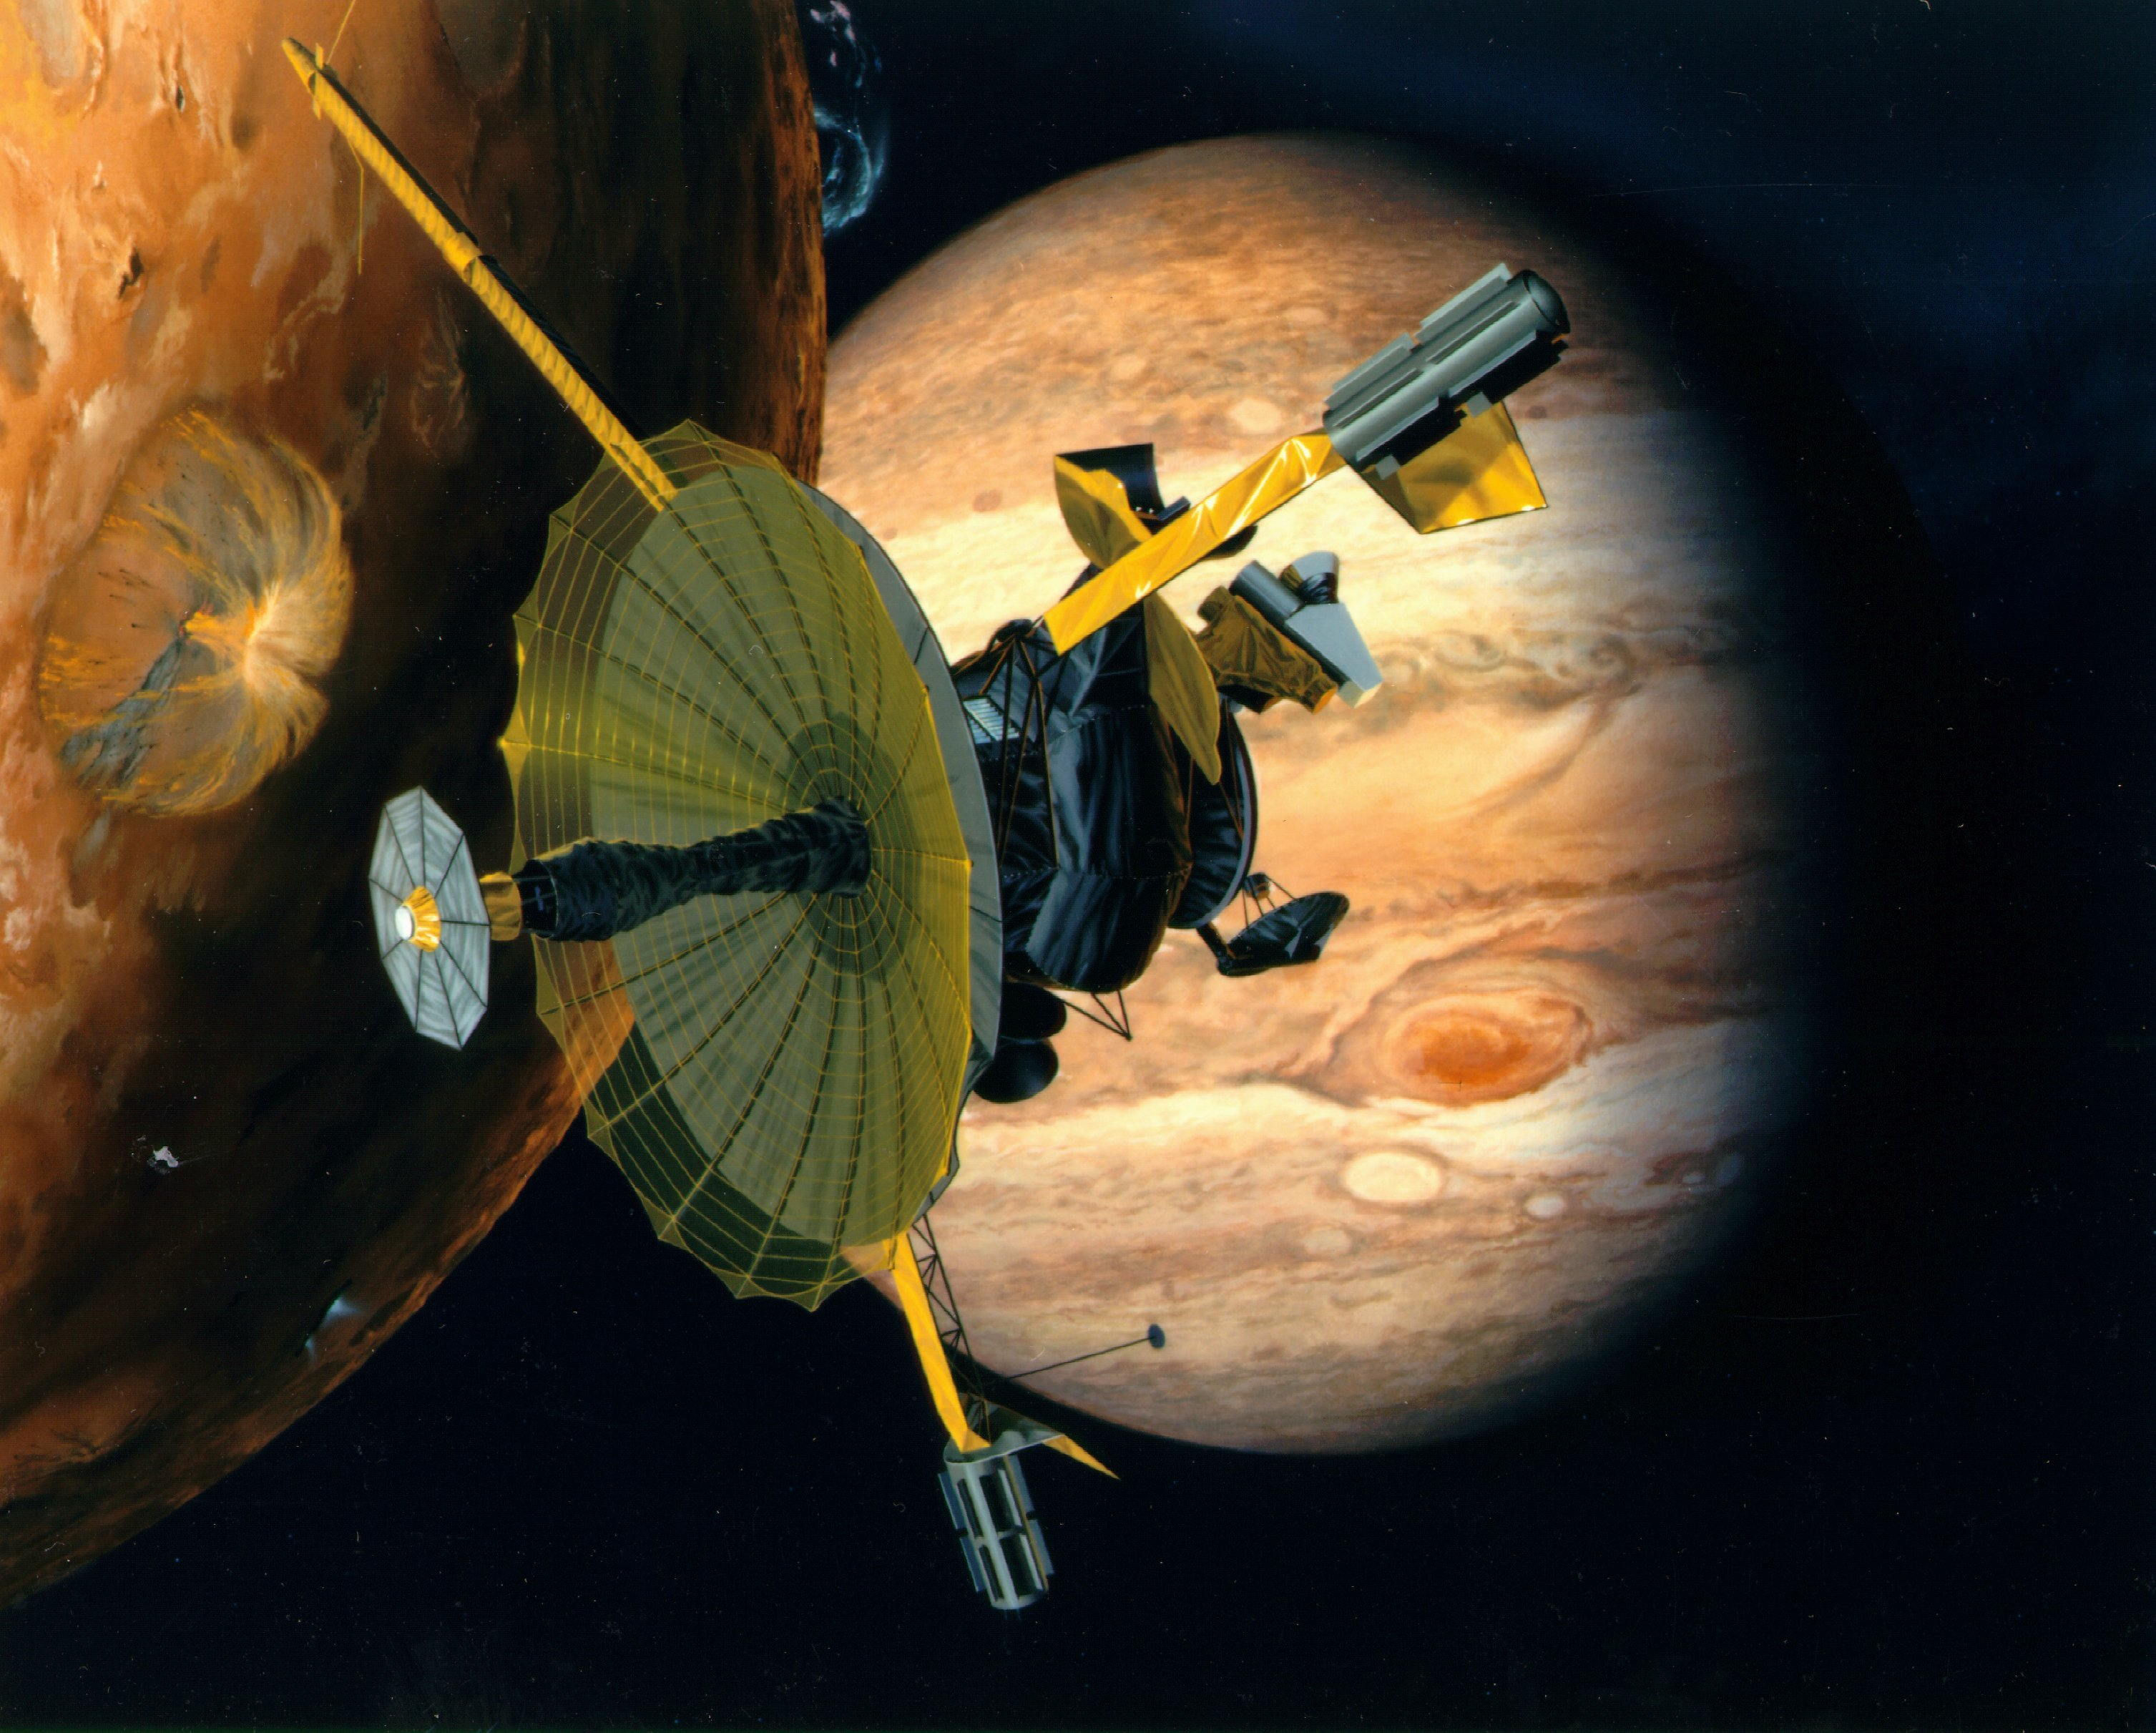 nasa galileo probe - photo #21